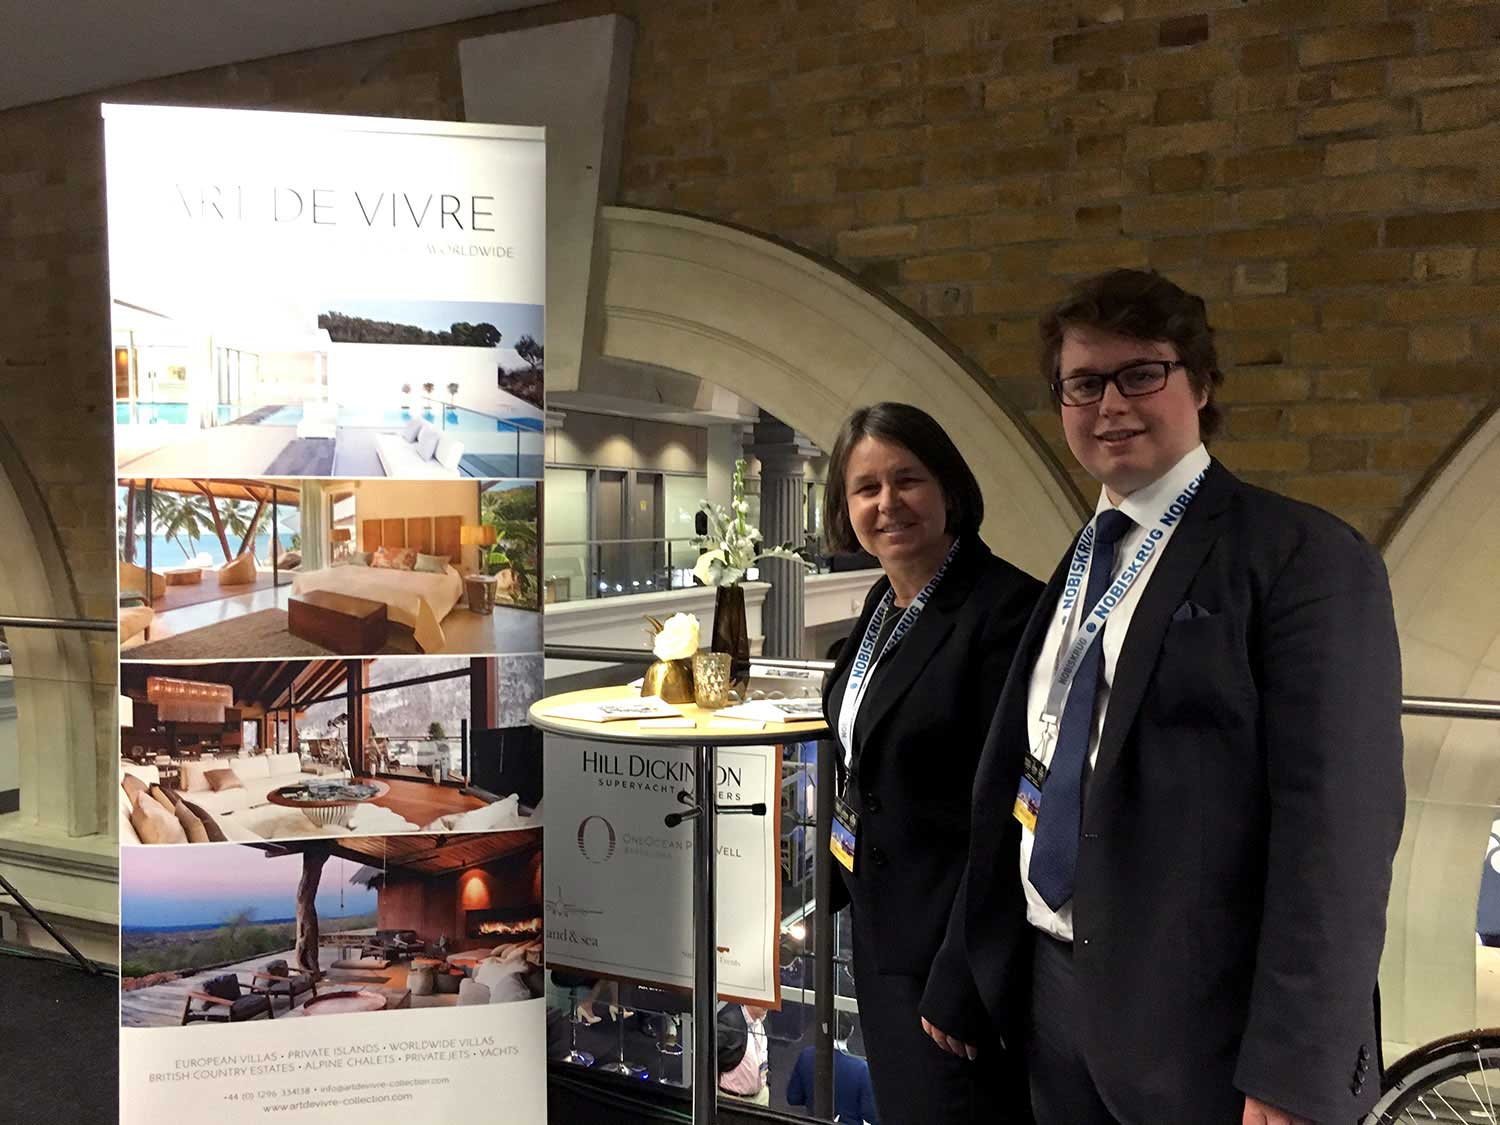 Julie and Sacha Gauthier welcoming partners and new faces to  Art de Vivre 's new properties and services